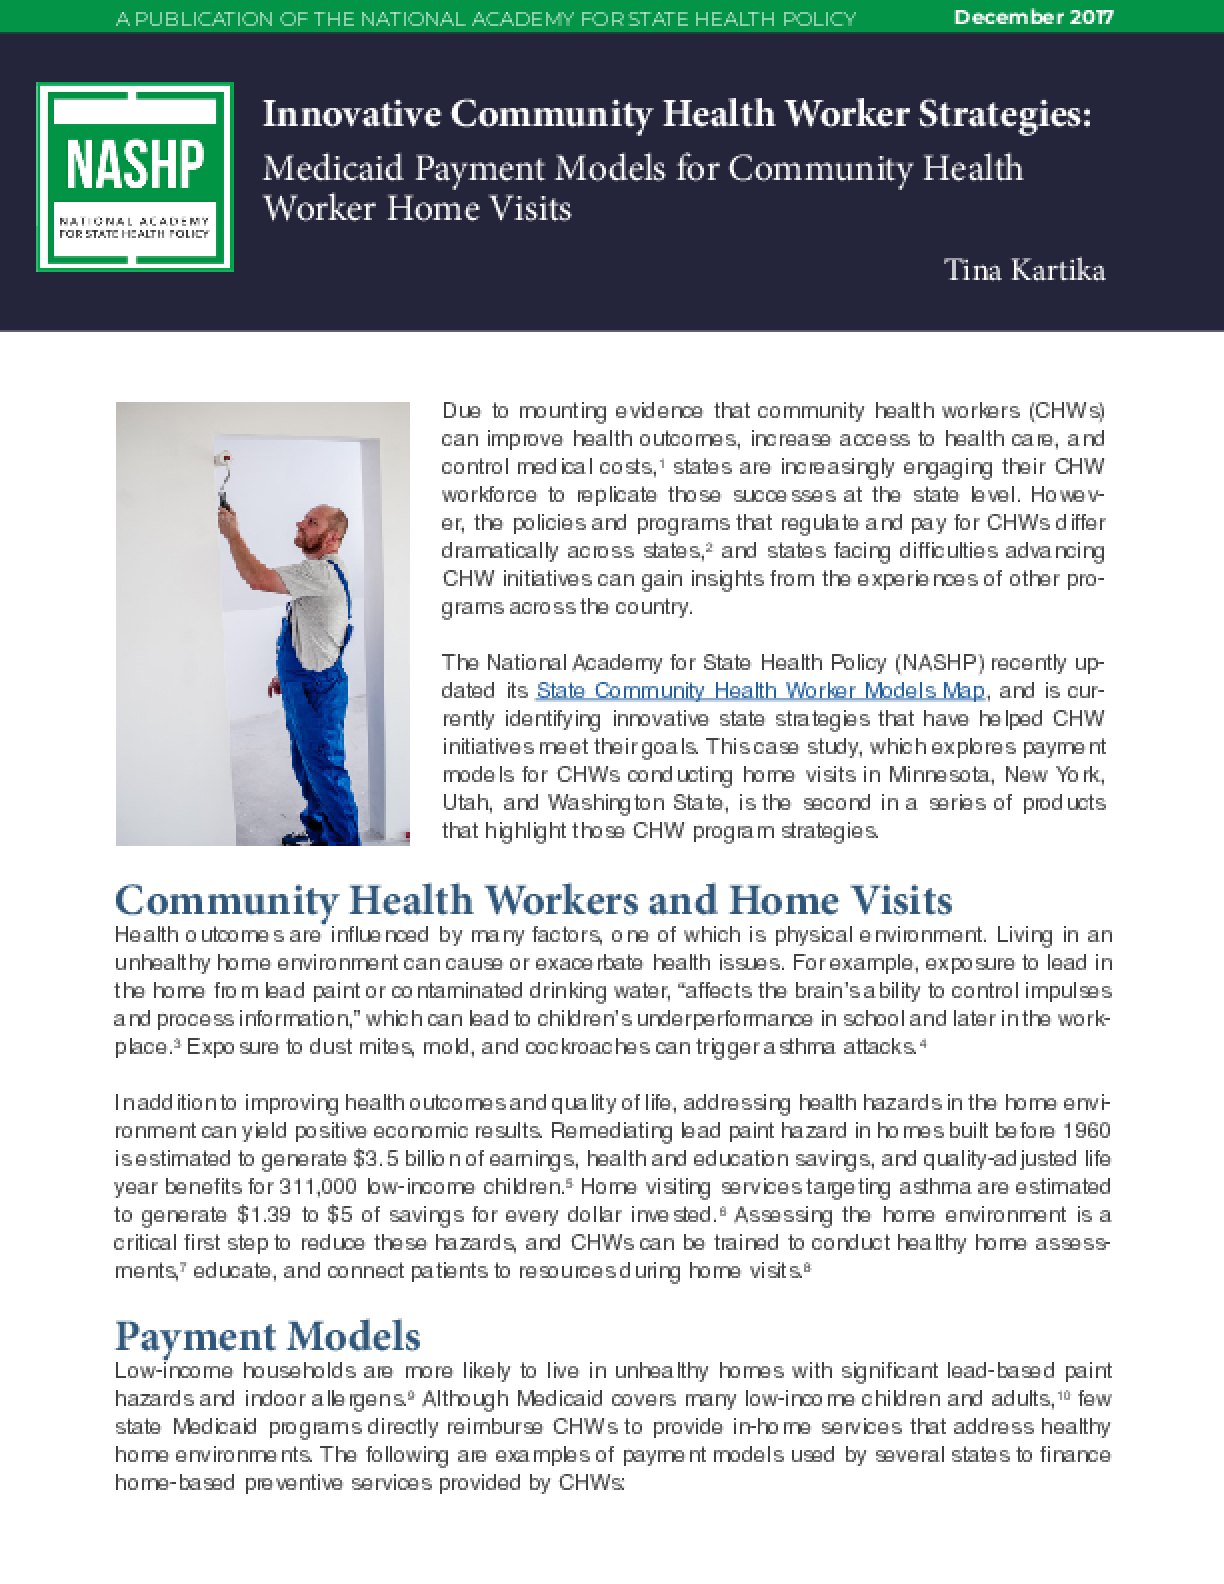 Innovative Community Health Worker Strategies: Medicaid Payment Models for Community Health Worker Home Visits